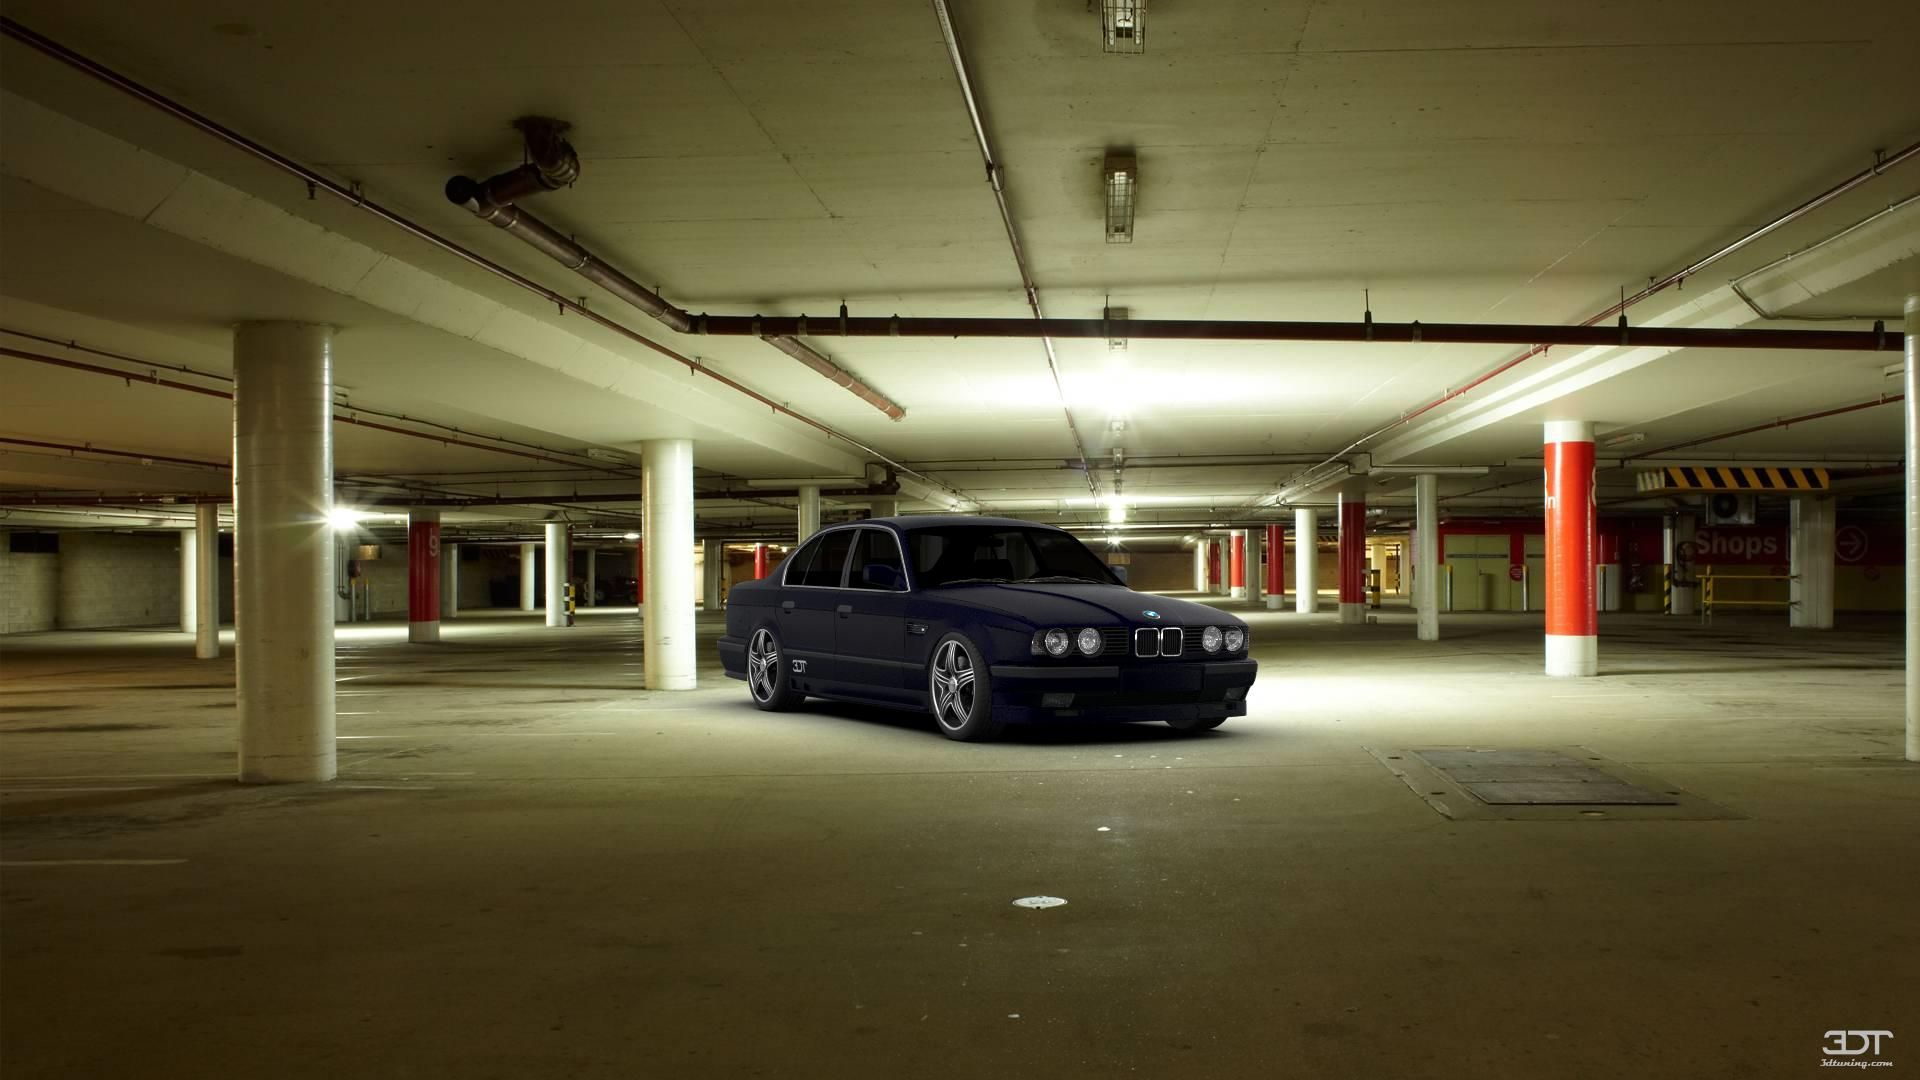 Russian mafia bmw 5series 1987 at 3dtuning 3dtuning tuning